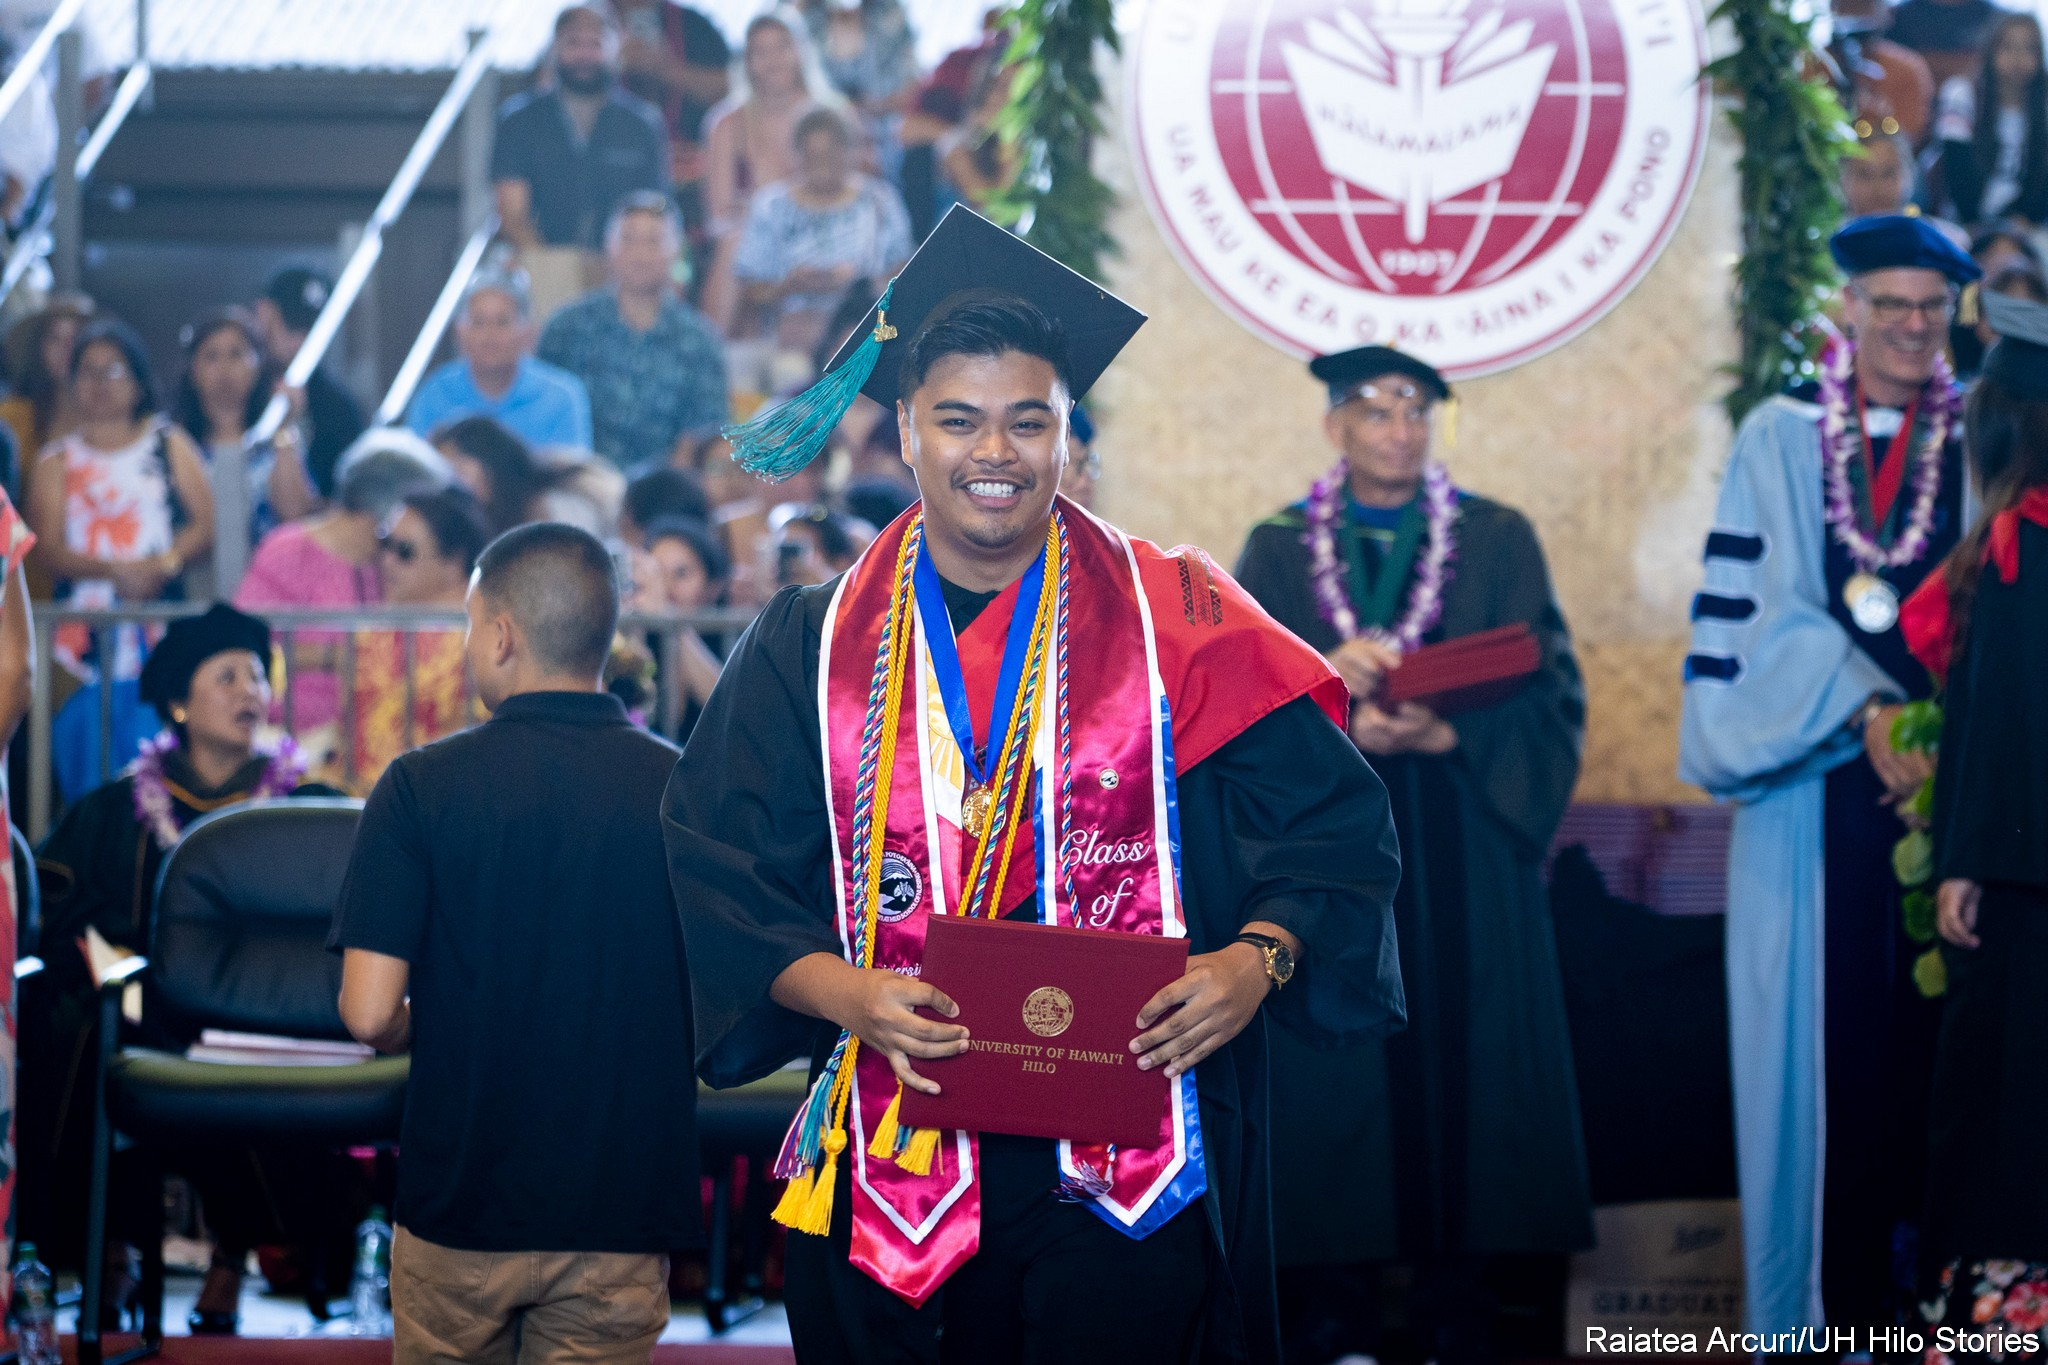 Male graduate with red sash, gold and blue cords, leaving dais with diploma.